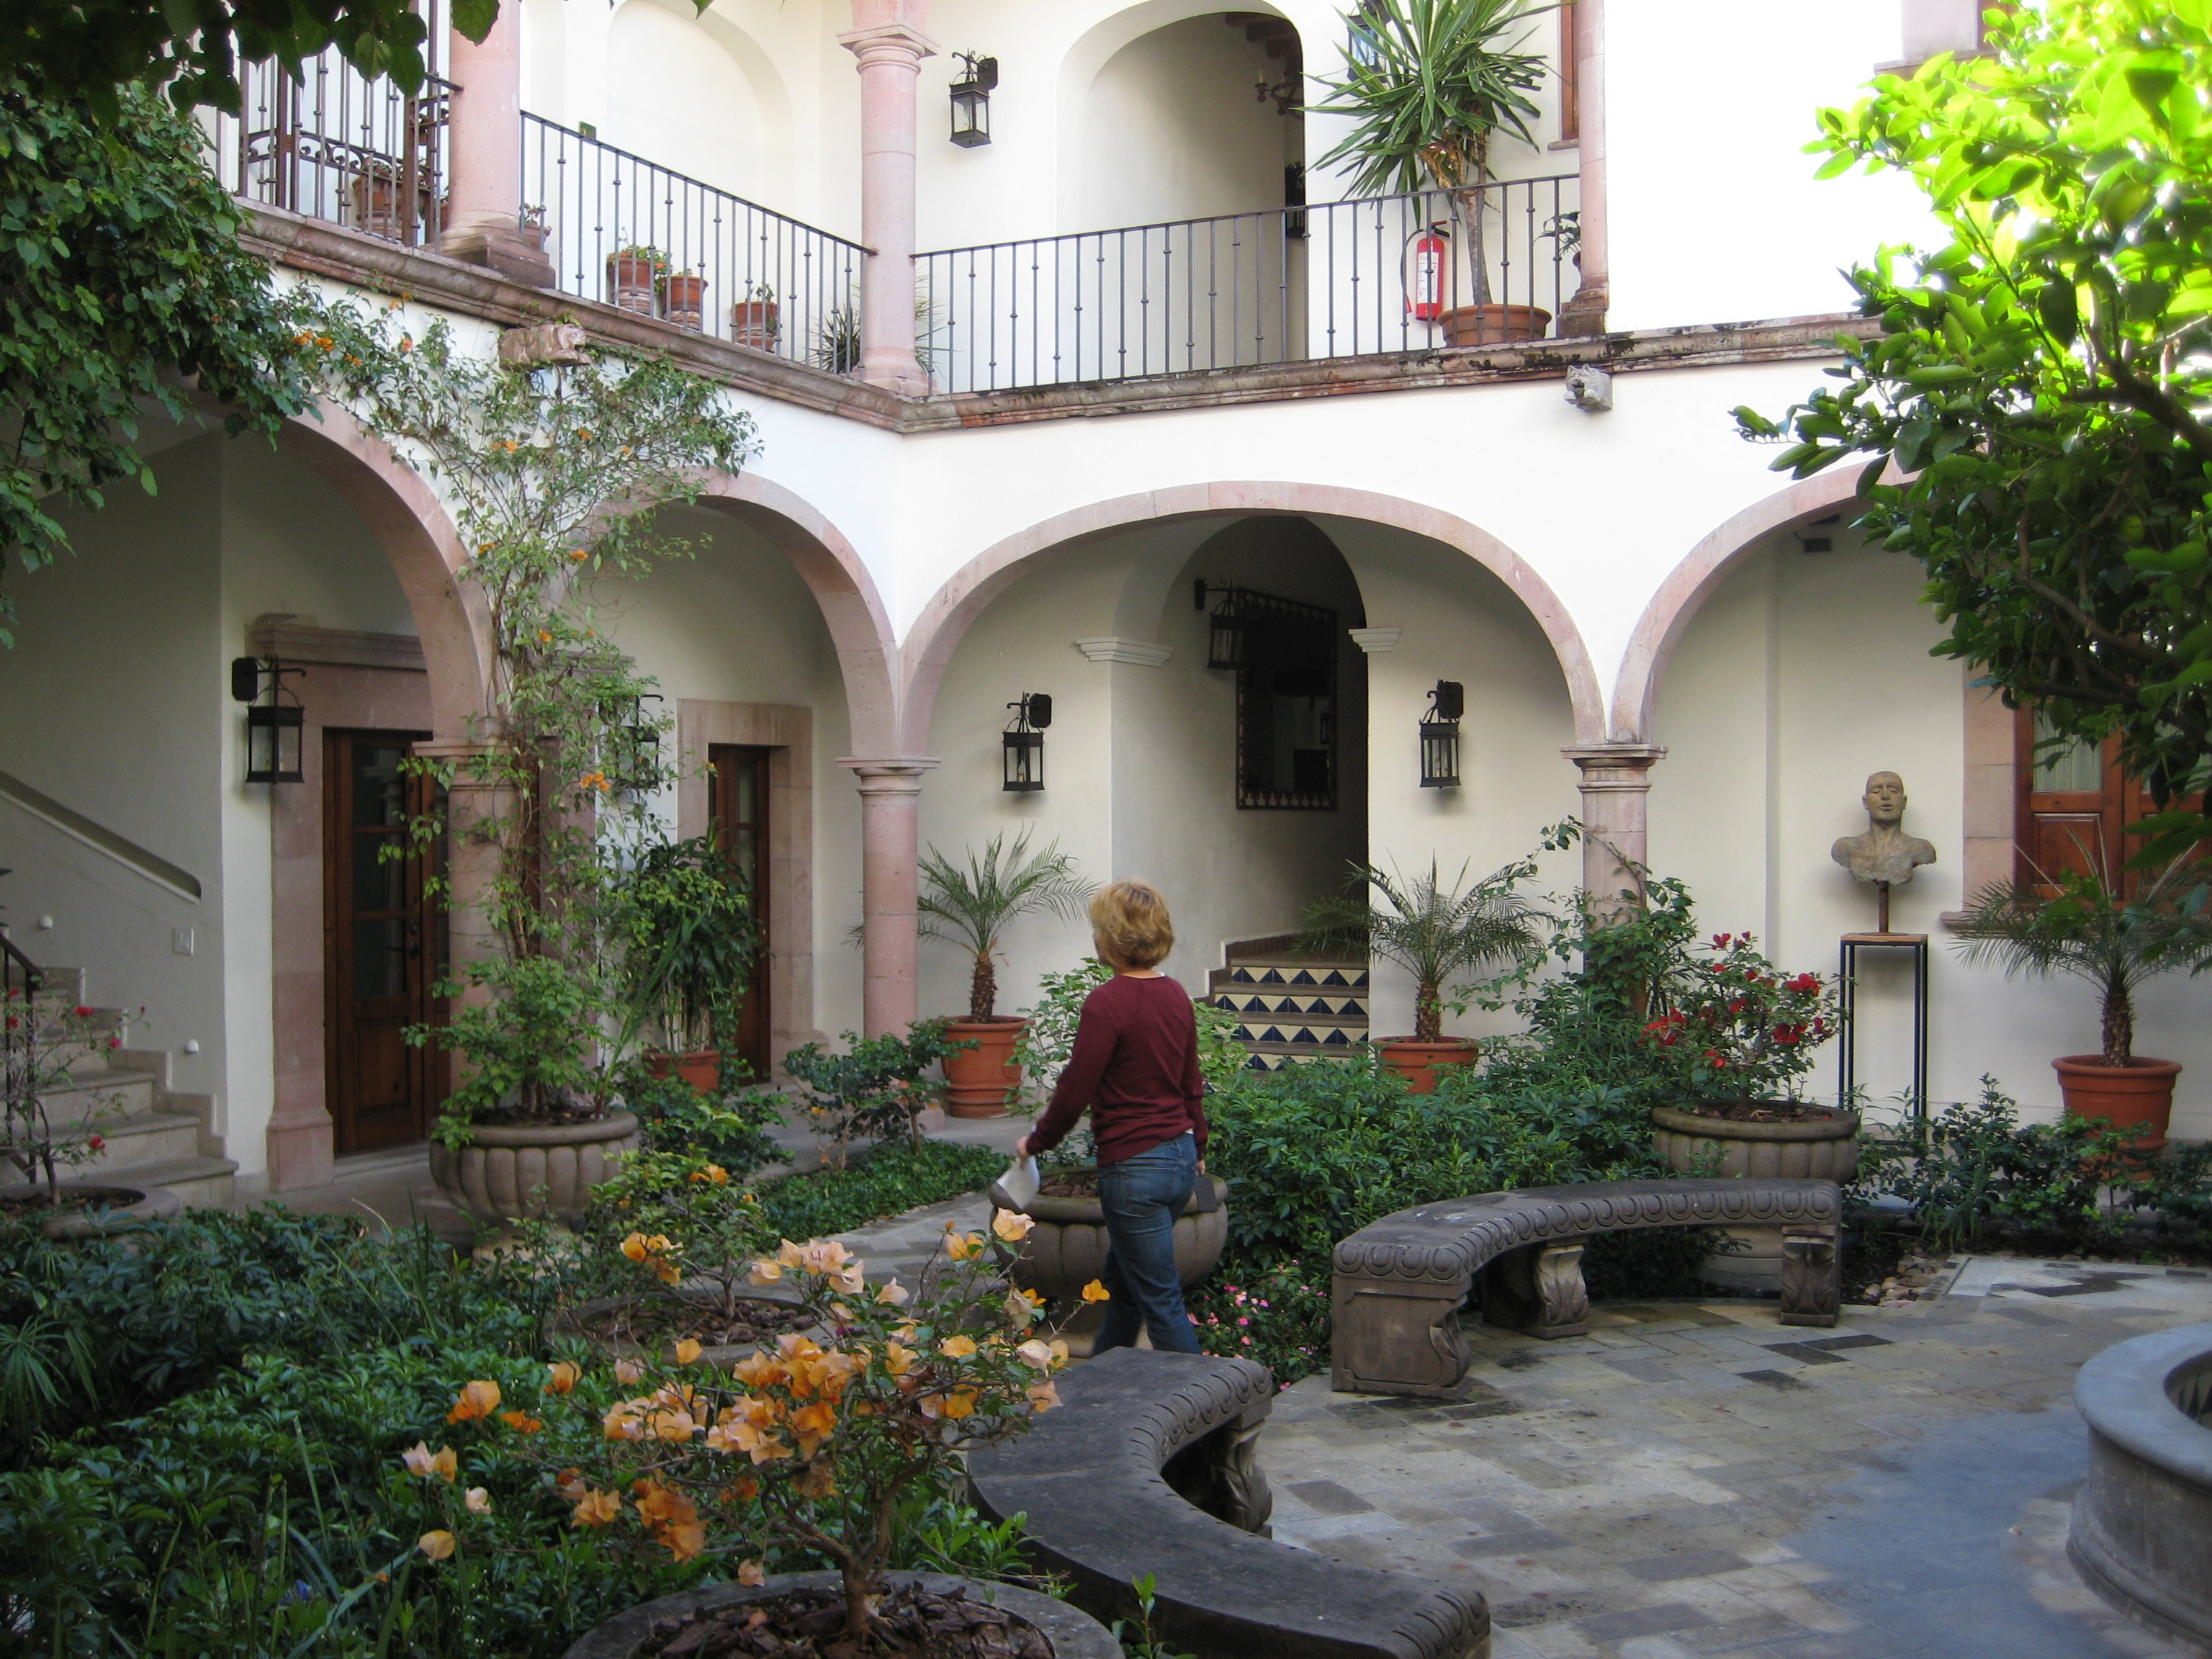 returning to our cool courtyard for siesta